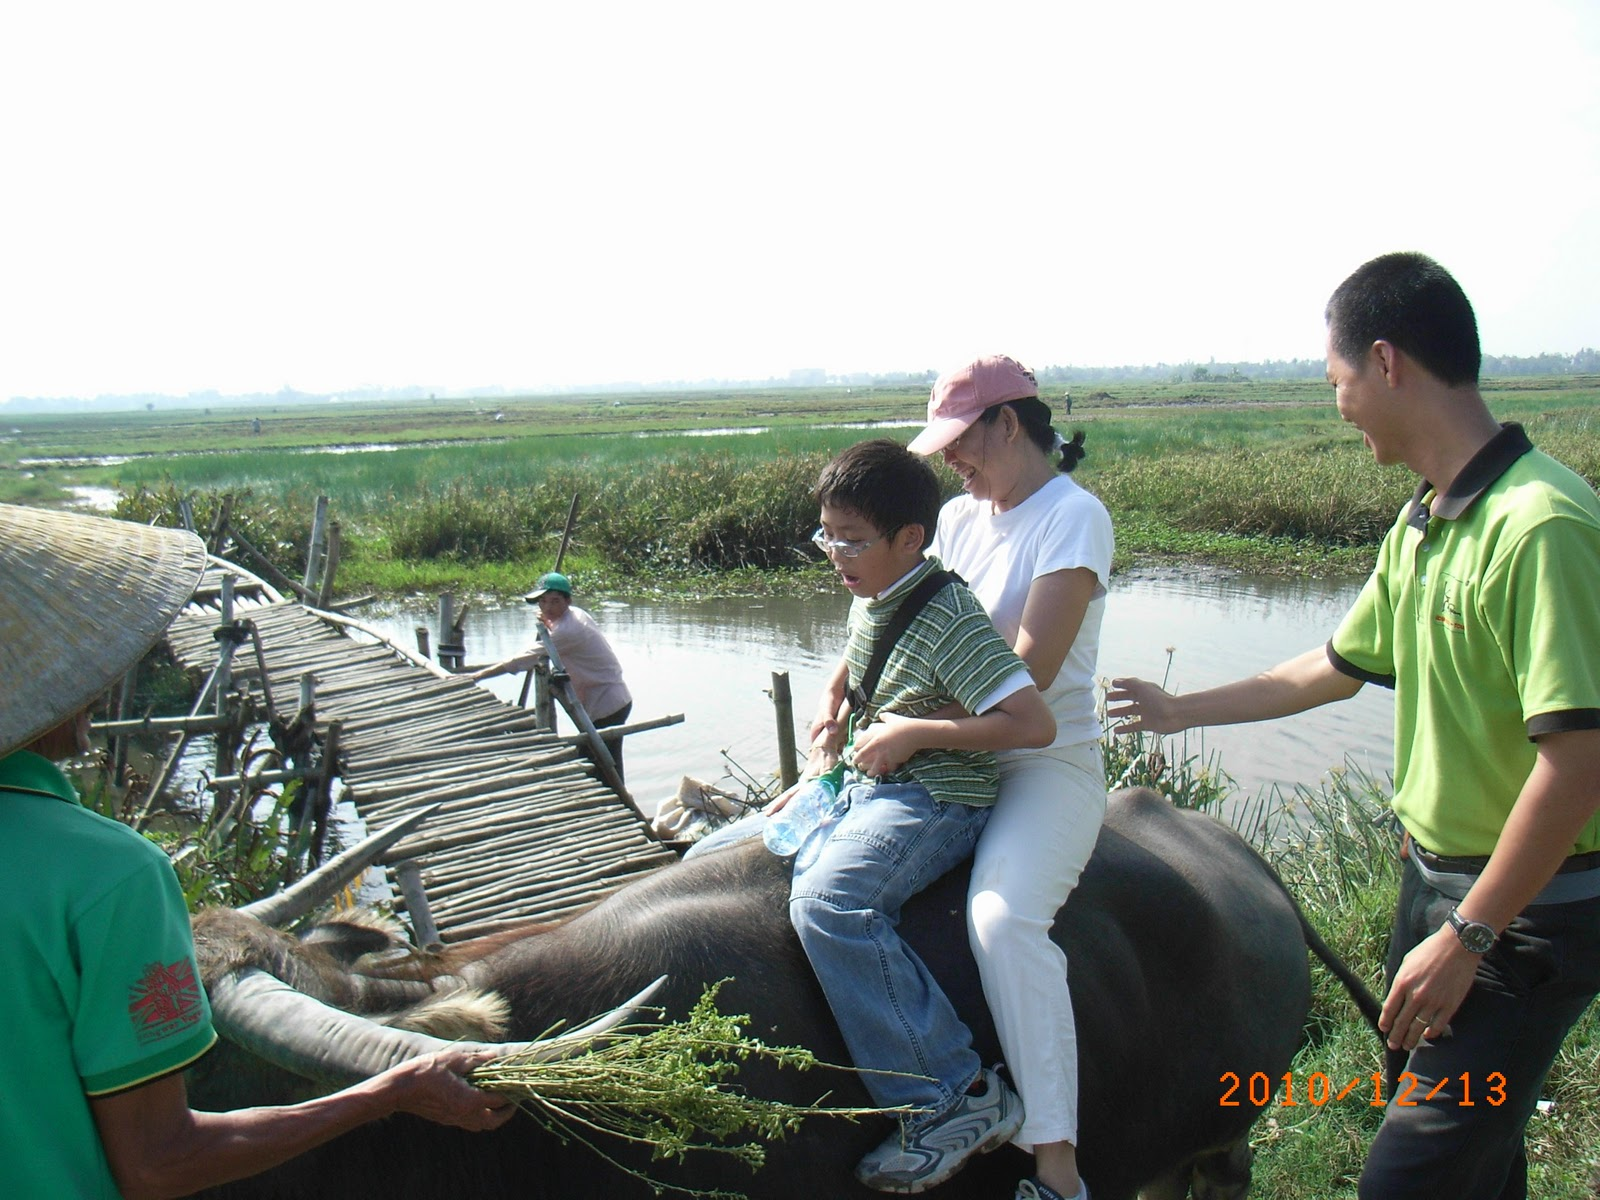 Susan andPaxton riding the water Buffalo